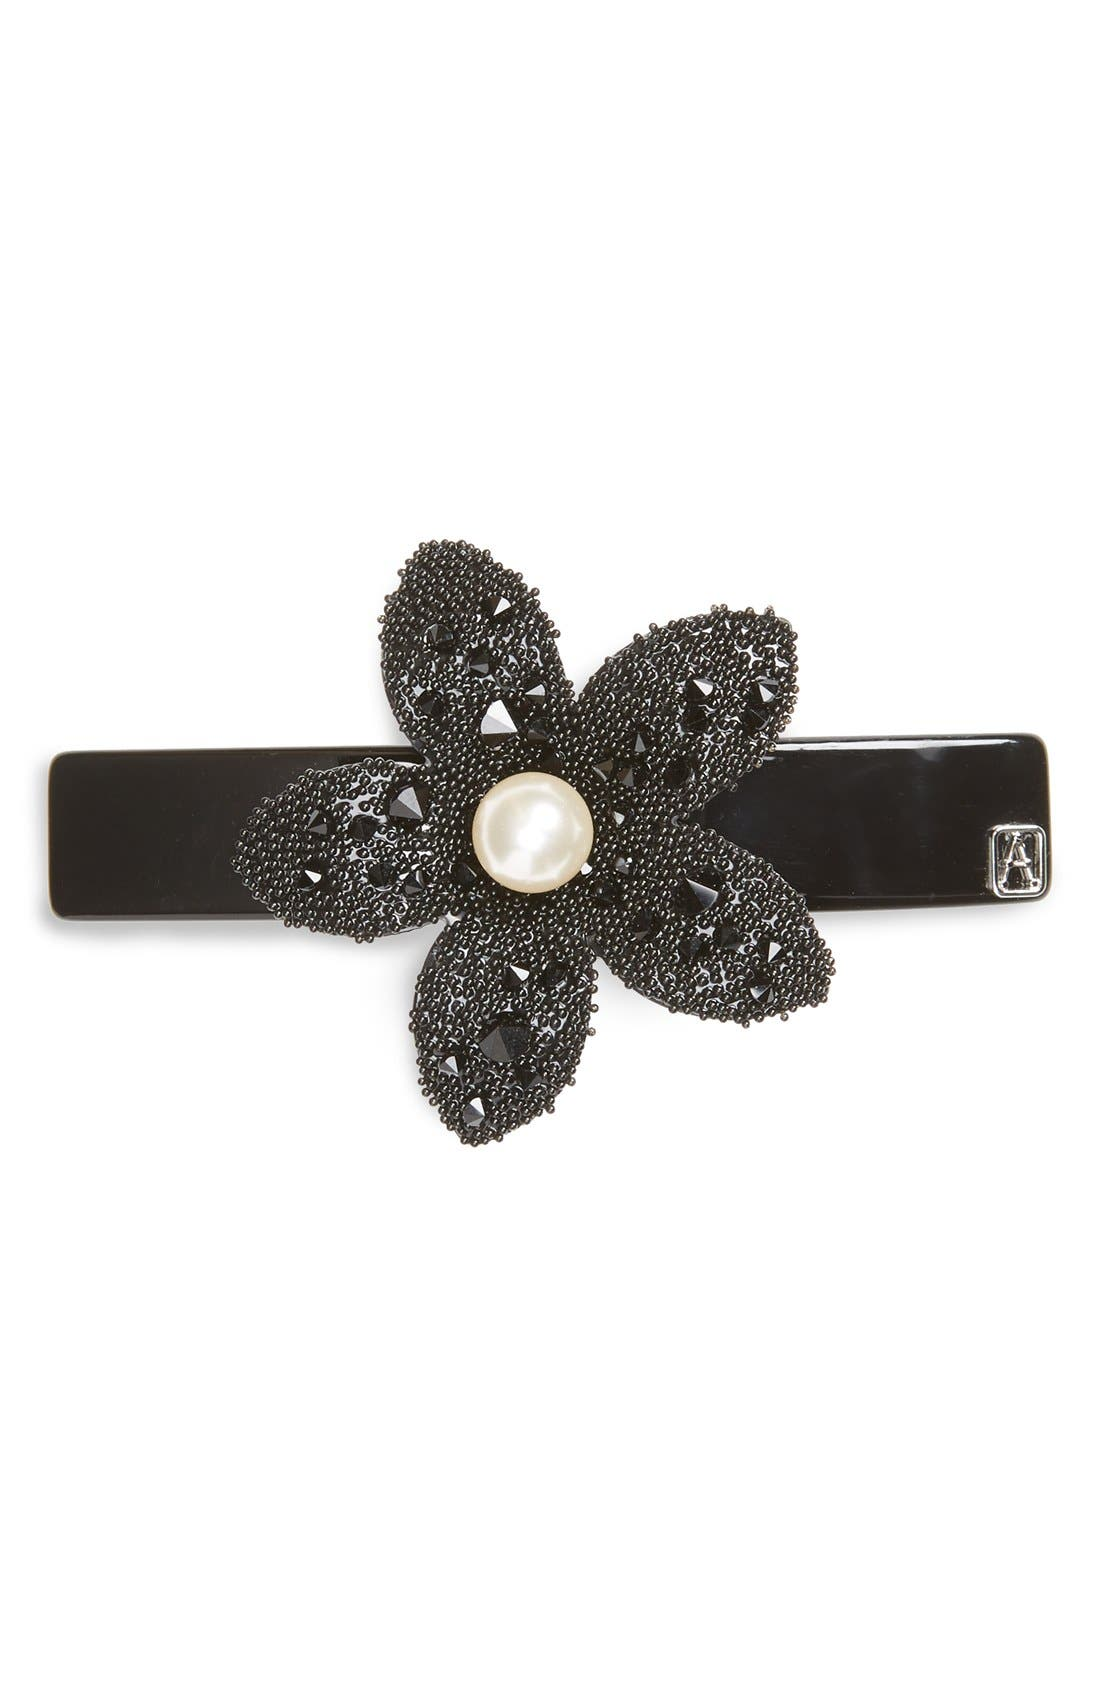 'Flower & Strass' Barrette,                             Main thumbnail 1, color,                             001